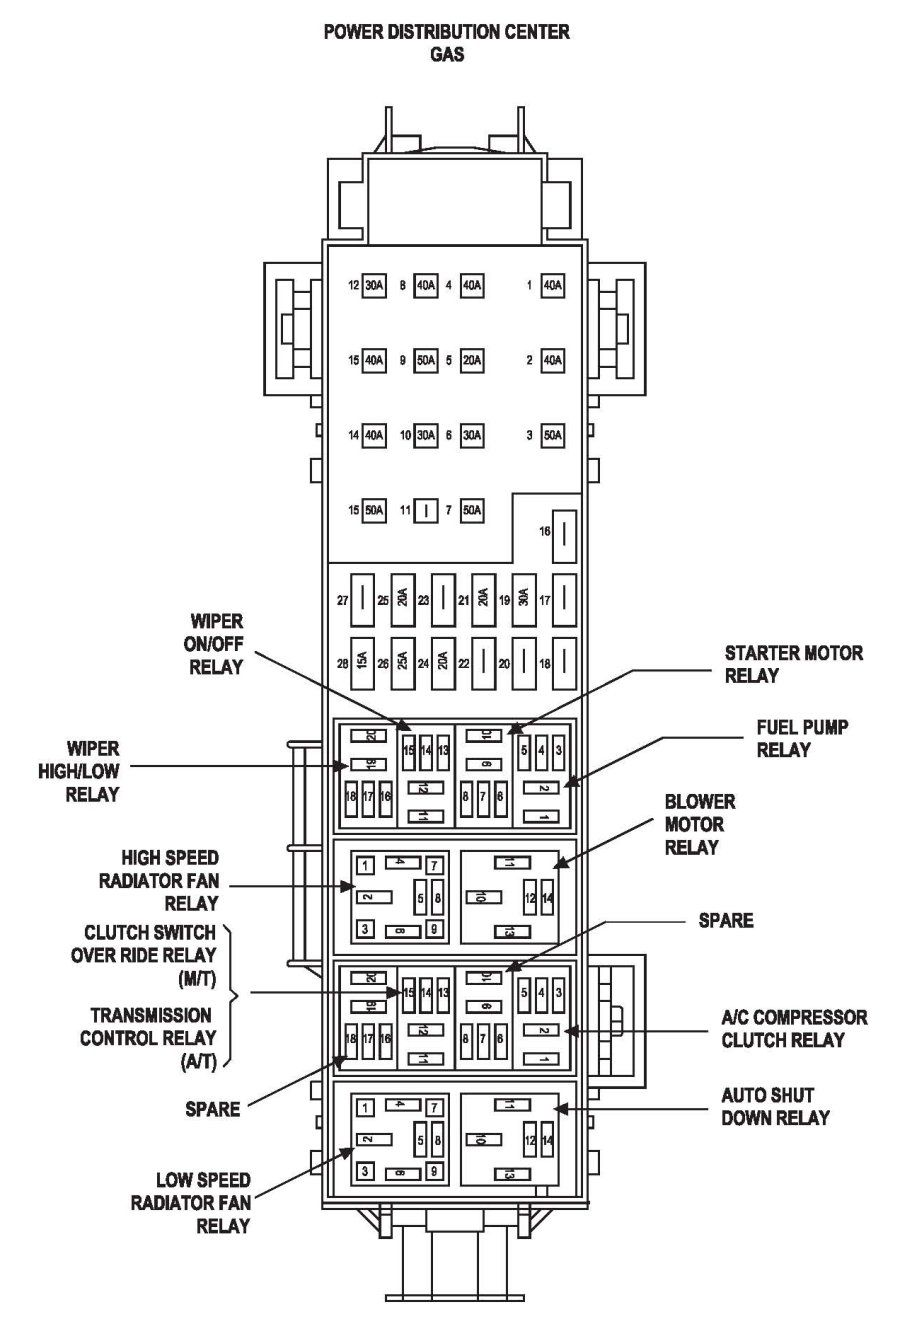 b3536c3739783eb19f827744cc42c3c4 jeep liberty fuse box diagram image details jeep liberty 2001 jeep wrangler fuse box diagram at panicattacktreatment.co